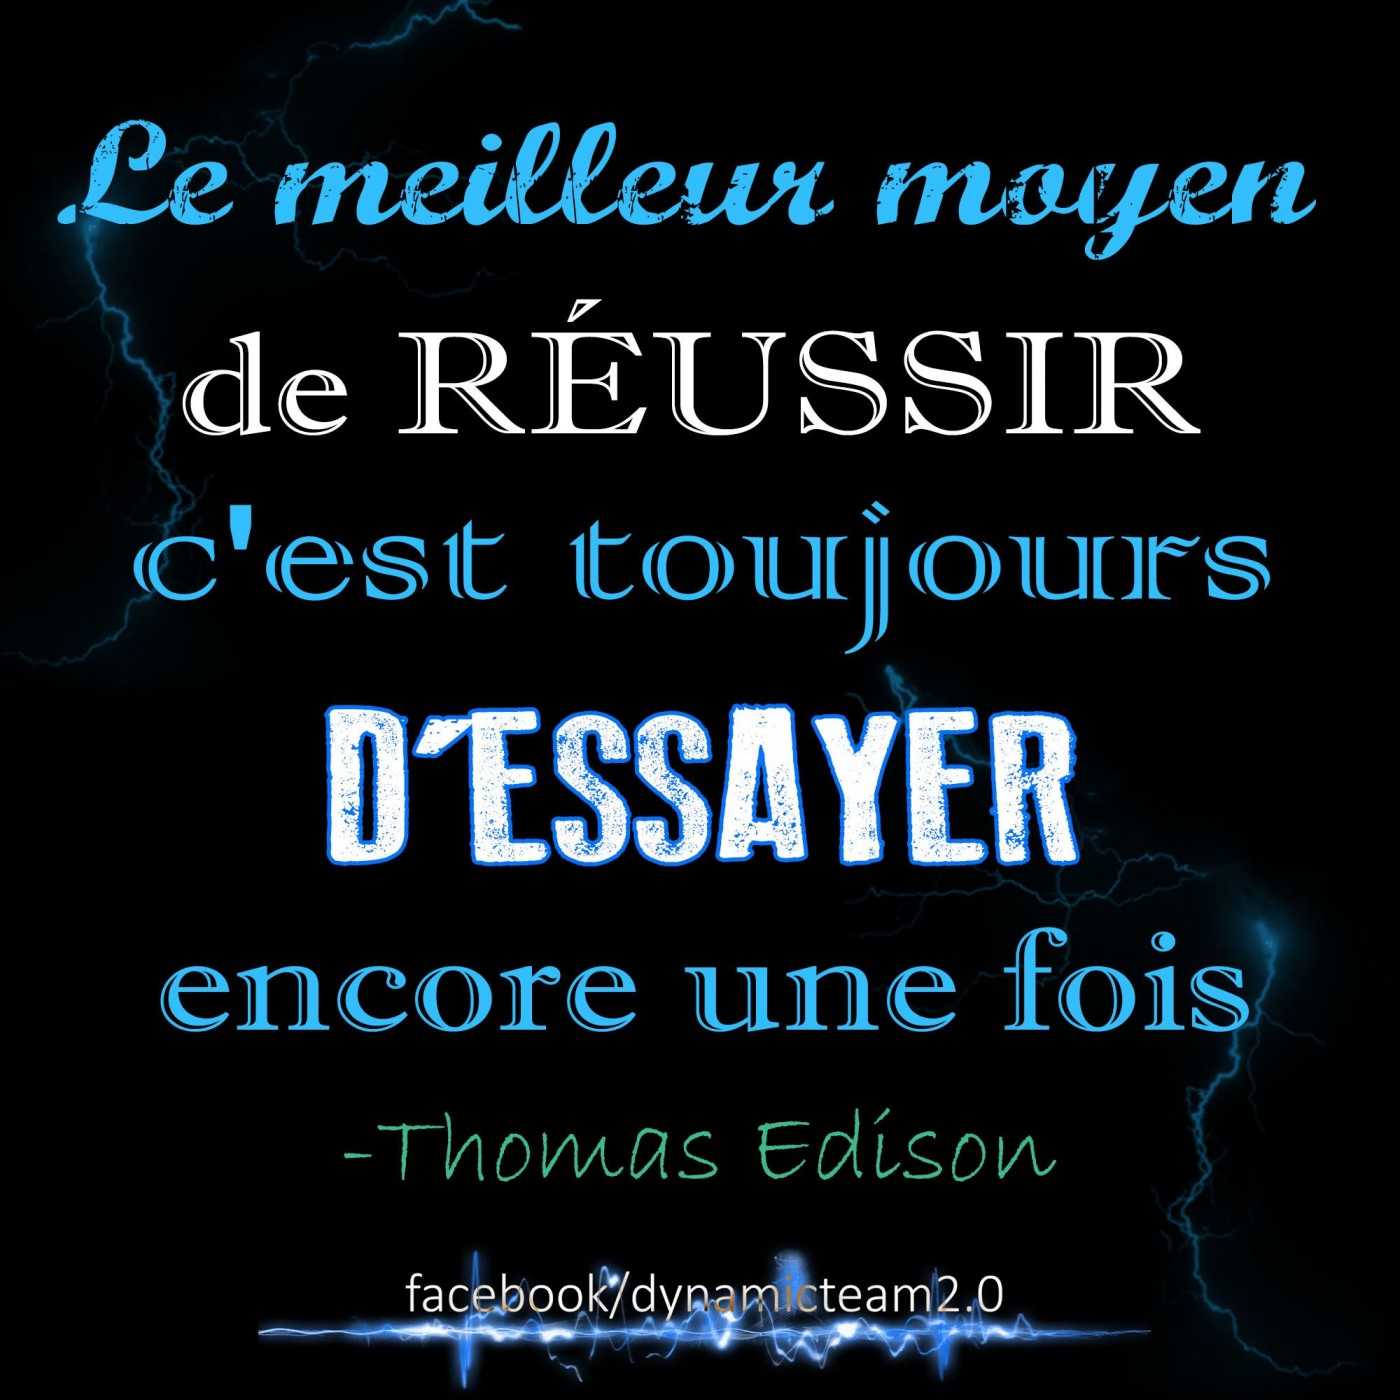 003 Essayer Essay Impressive De Or A Conjugation Imperative Ne Pas Rire 1400